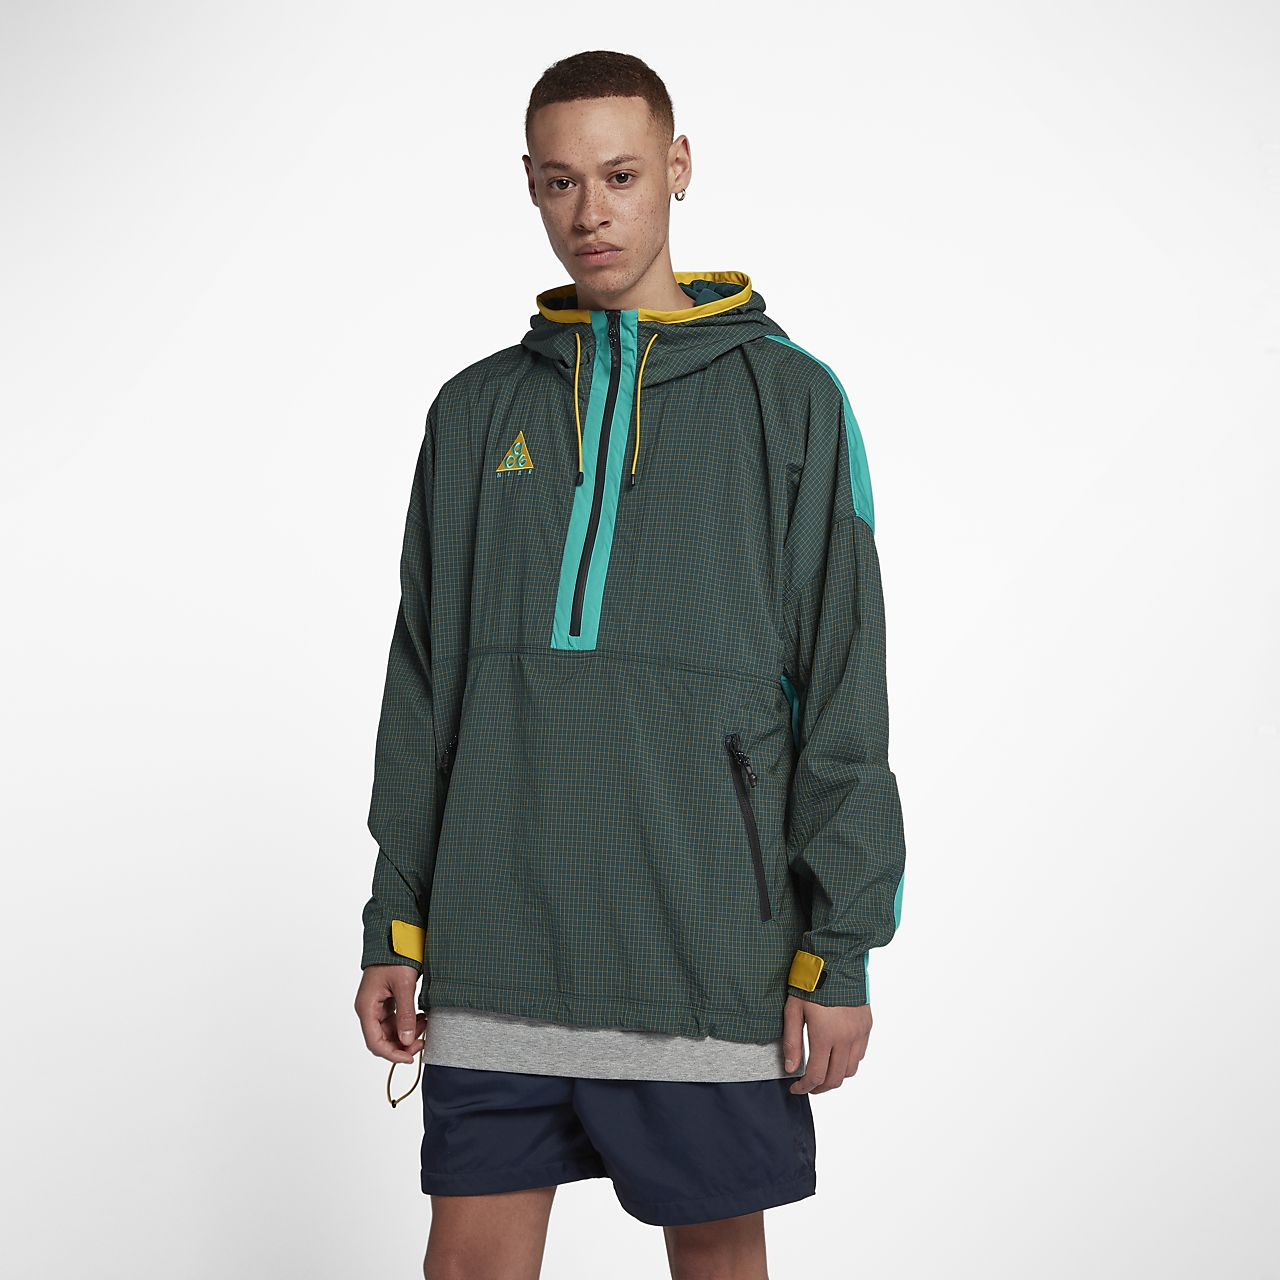 46e3d69ad3d0 ... Mud-Puddles in the Concrete Desert nike acg. Low Resolution Nike ACG  Jacket Nike ACG Jacket